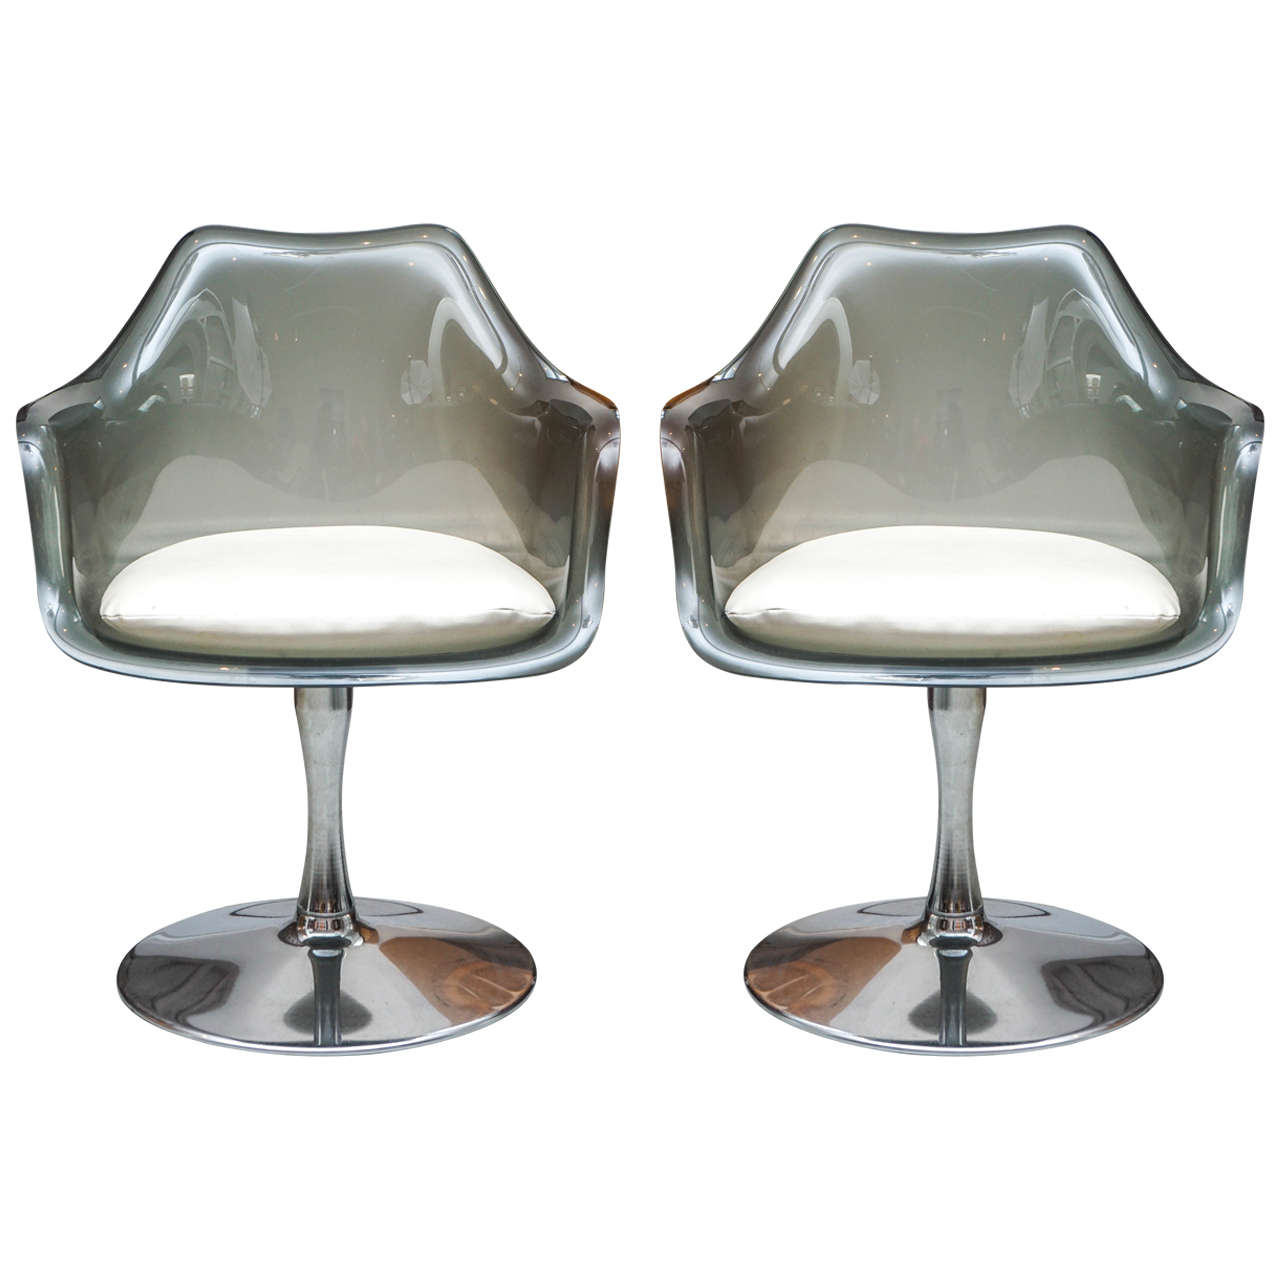 Pair Of 1960s Tulip Chairs In The Style Of Eero Saarinen At 1stdibs